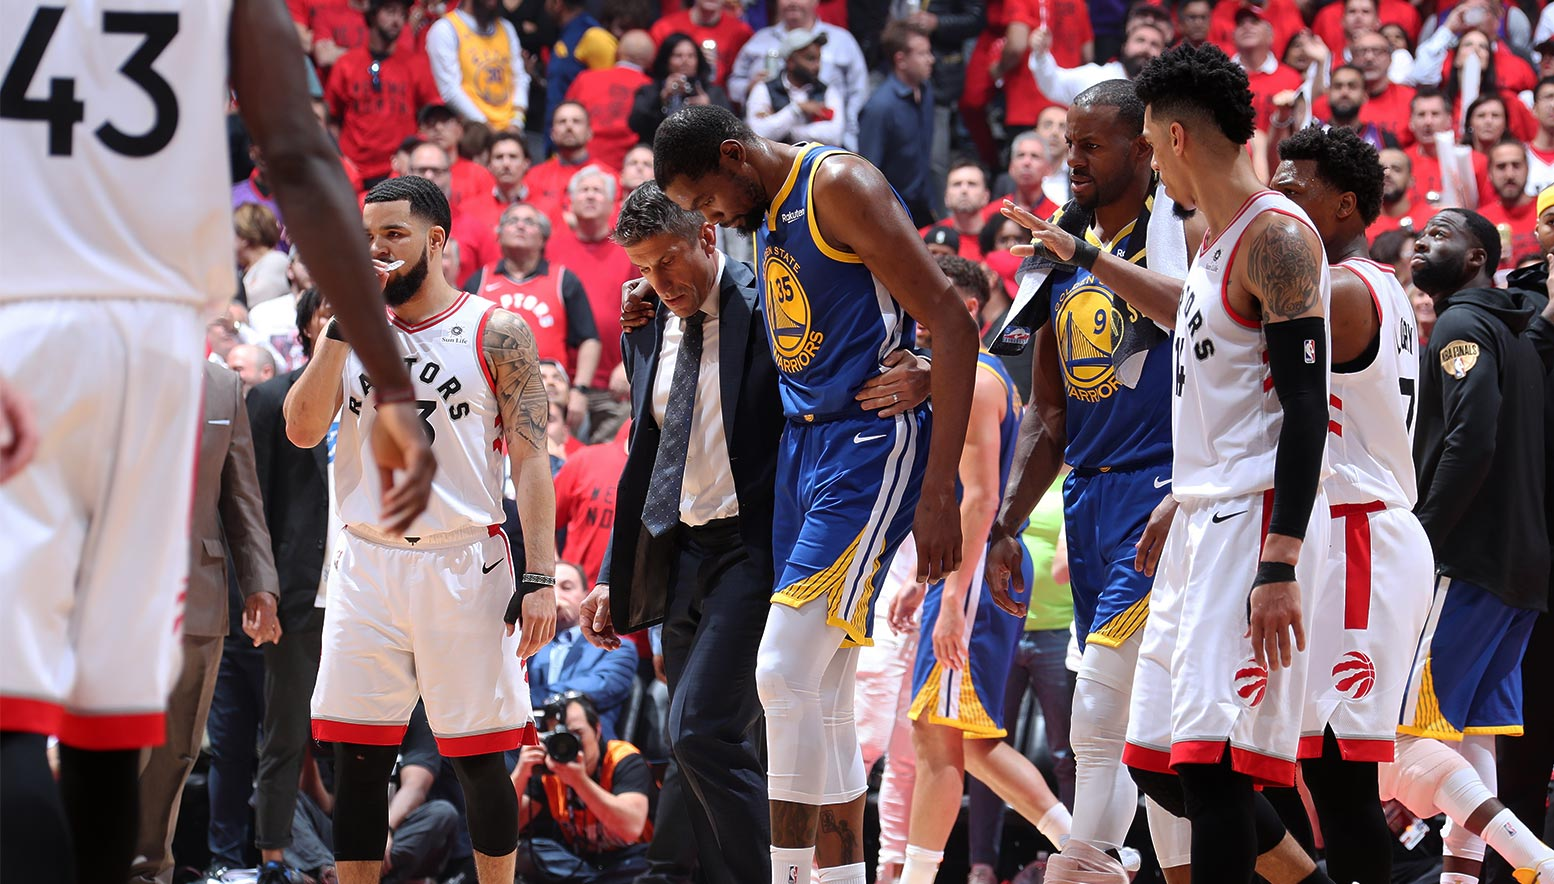 Kevin Durant is assisted off court after injuring his leg